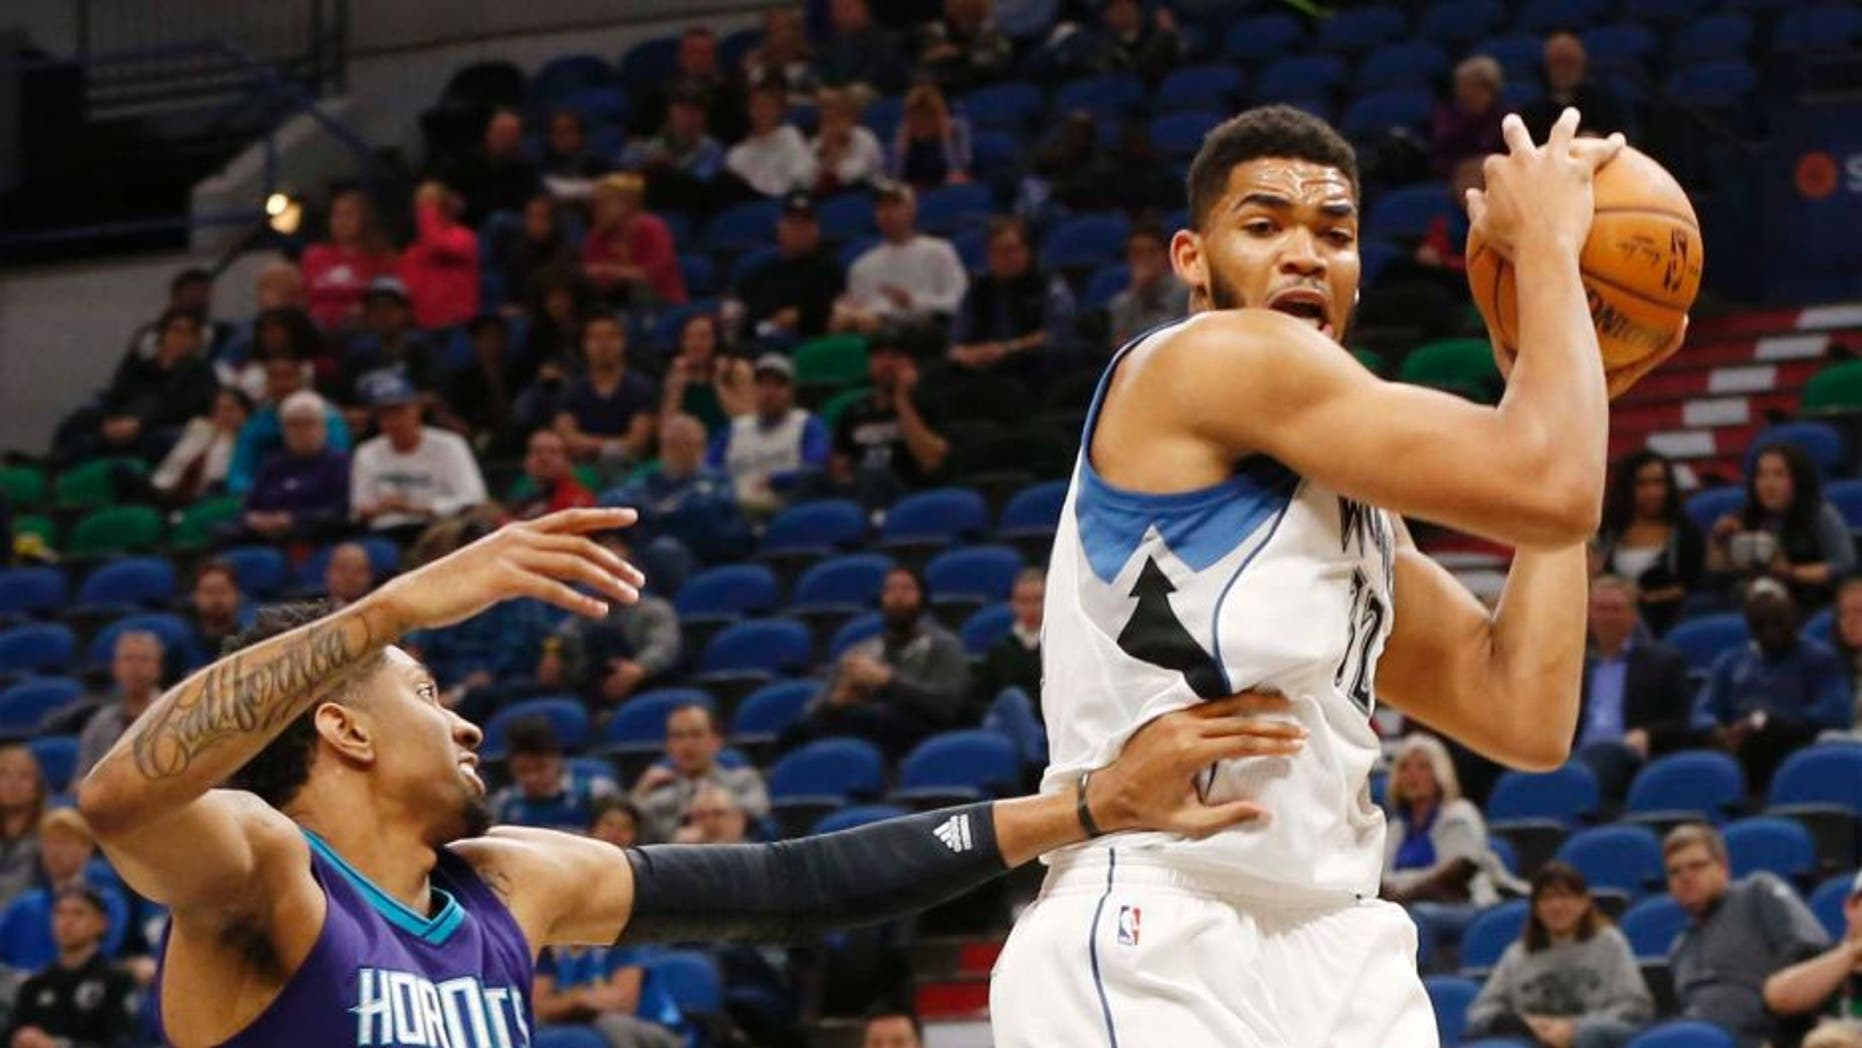 Minnesota Timberwolves' Karl-Anthony Towns, right, out jumps Charlotte Hornets' Christian Wood for a rebound in the first quarter of an NBA preseason basketball game Friday, Oct. 21, 2016, in Minneapolis. (AP Photo/Jim Mone)